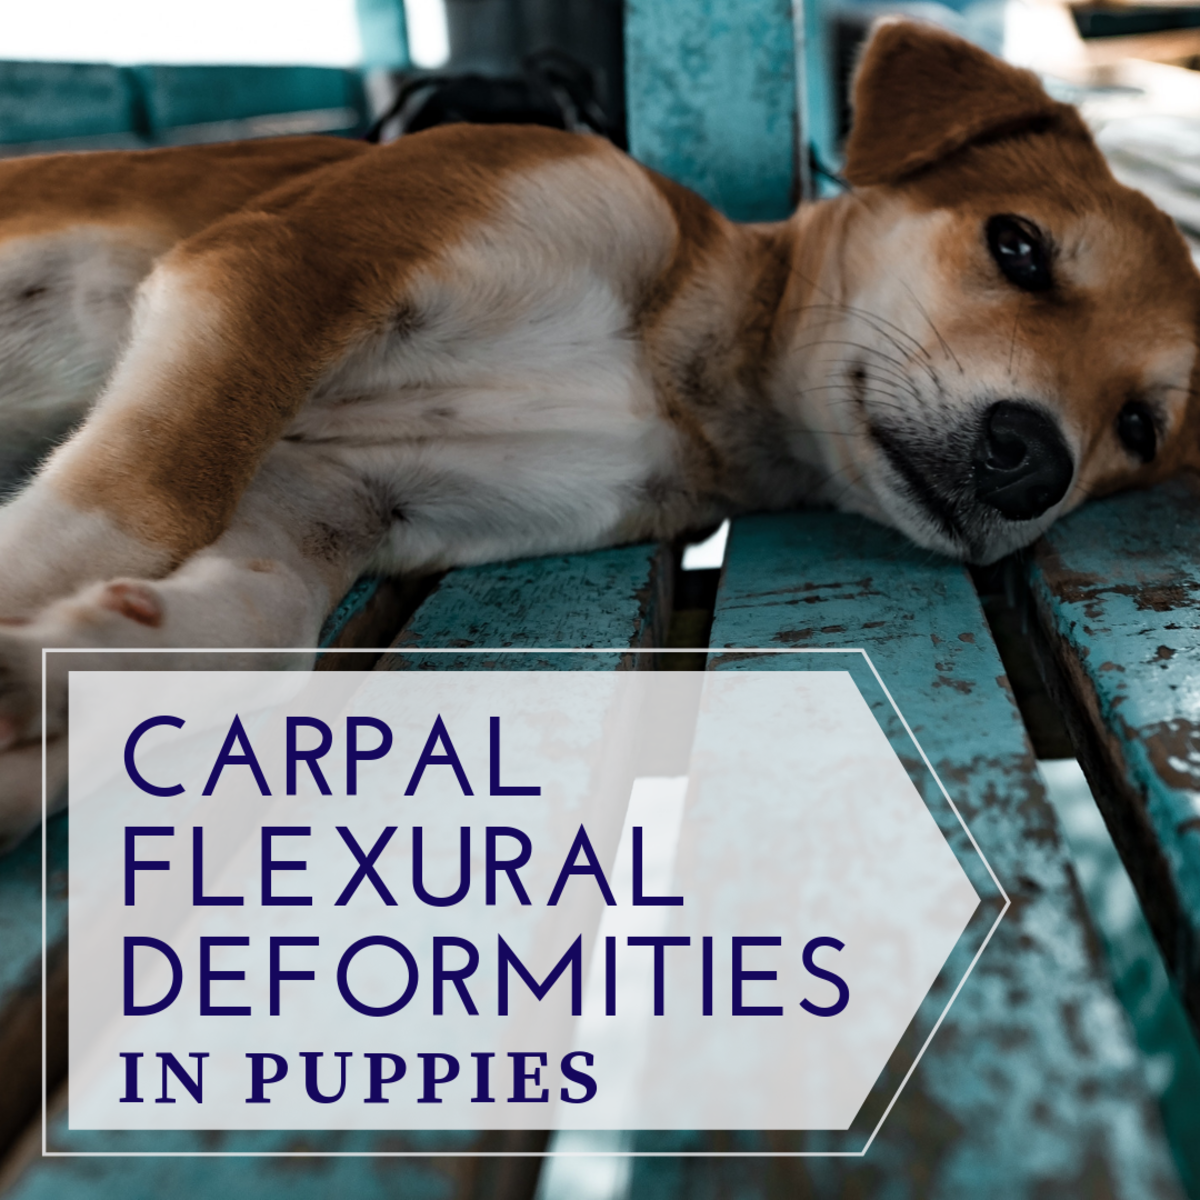 Carpal flexural deformities are quite common in puppies, but the condition can easily be resolved with proper care.